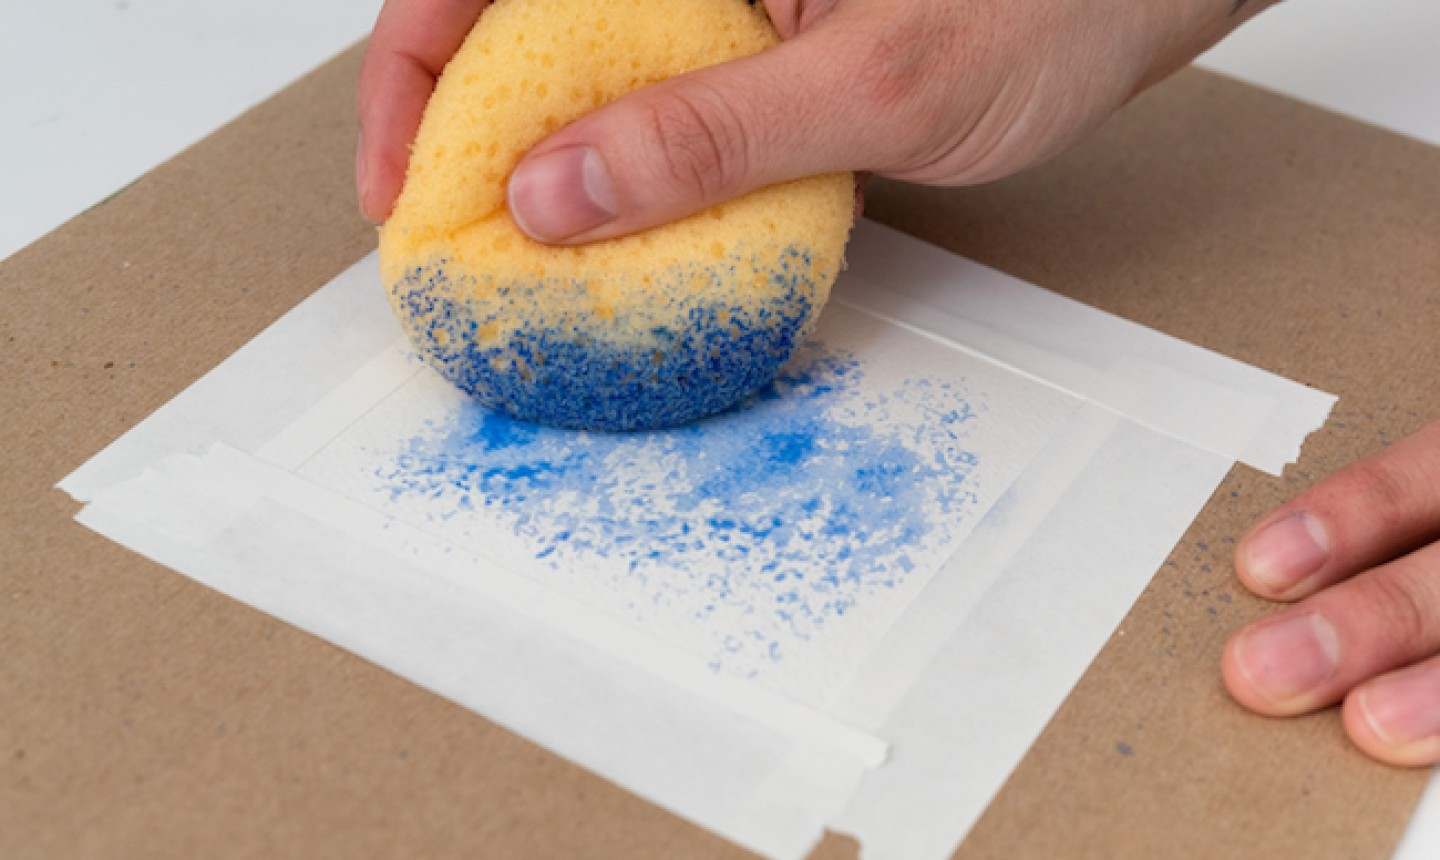 Stenciling with a sponge